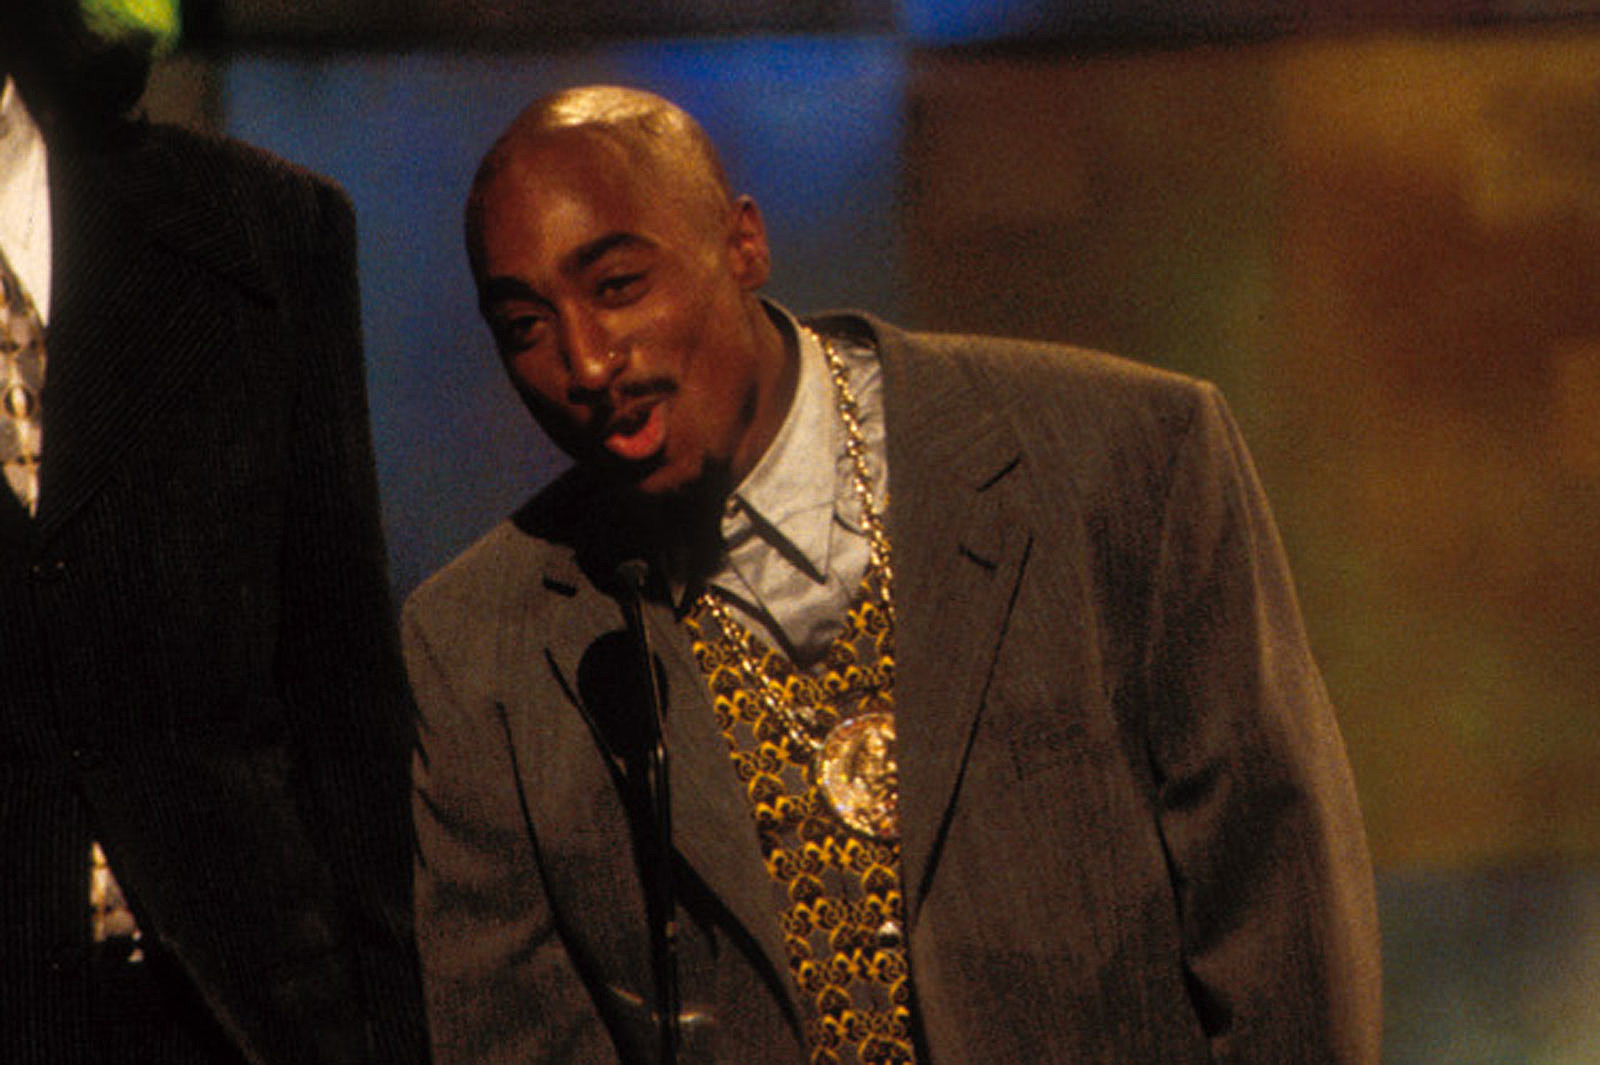 2Pac's Handwritten 'Dear Mama' Lyrics on Sale for $75K